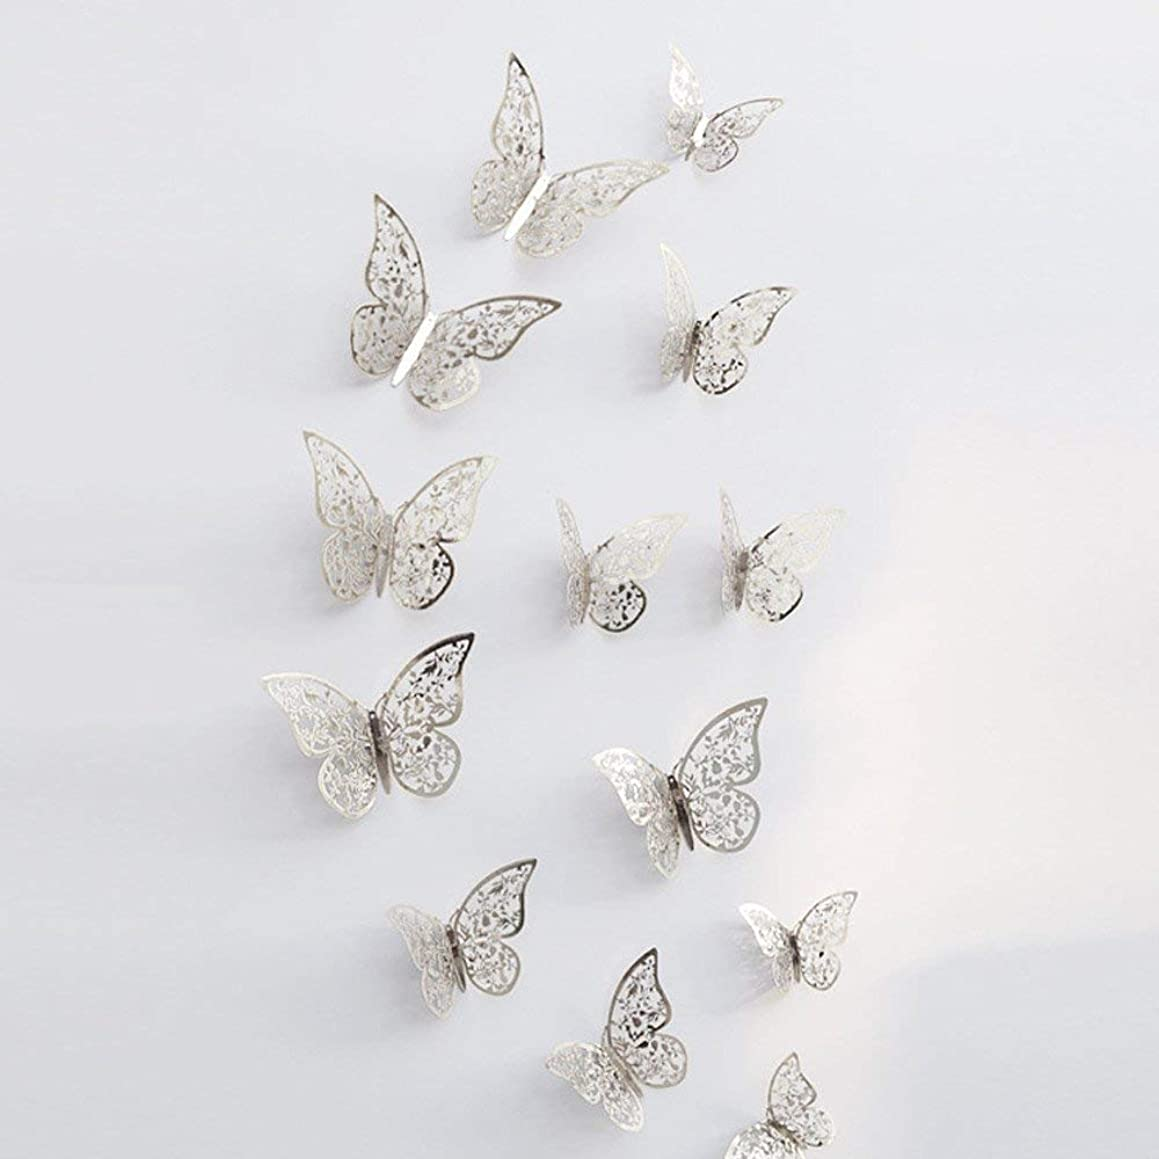 Botrong Clearance?? 12 Pcs 3D Hollow Wall Stickers Butterfly Fridge for Home Decoration New (F)